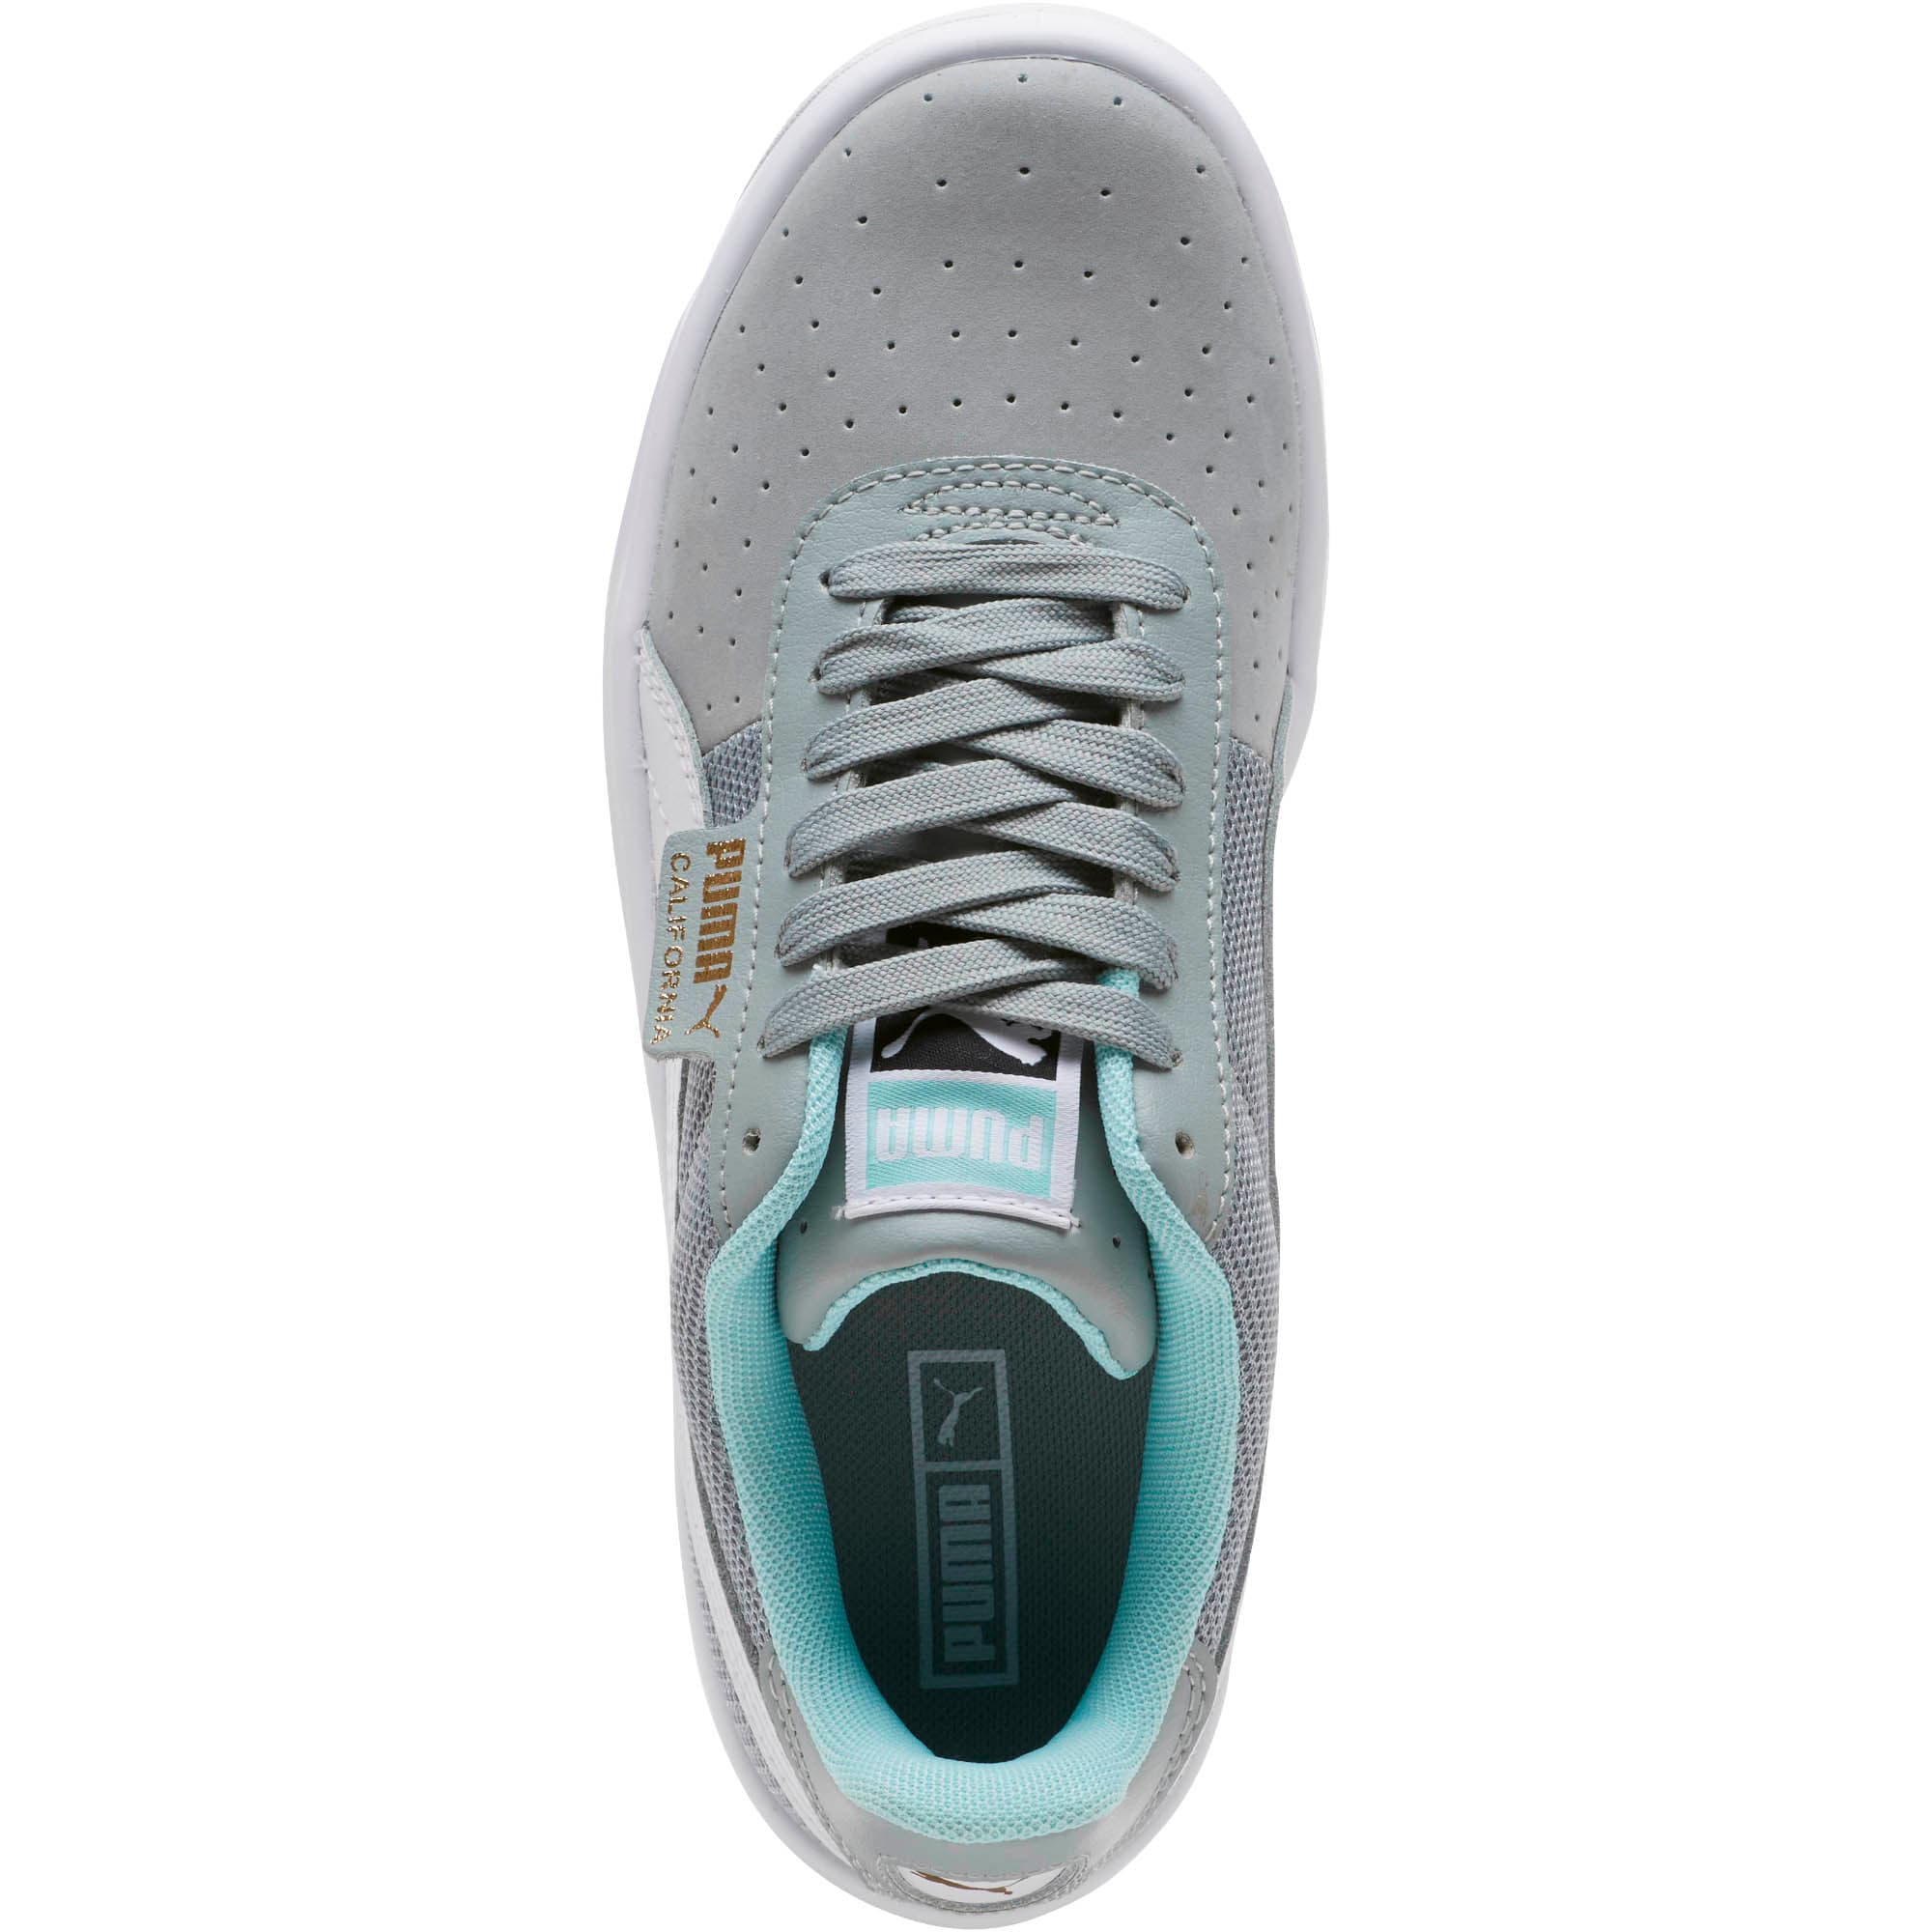 California Casual Sneakers JR, Quarry-Puma White- Gold, large